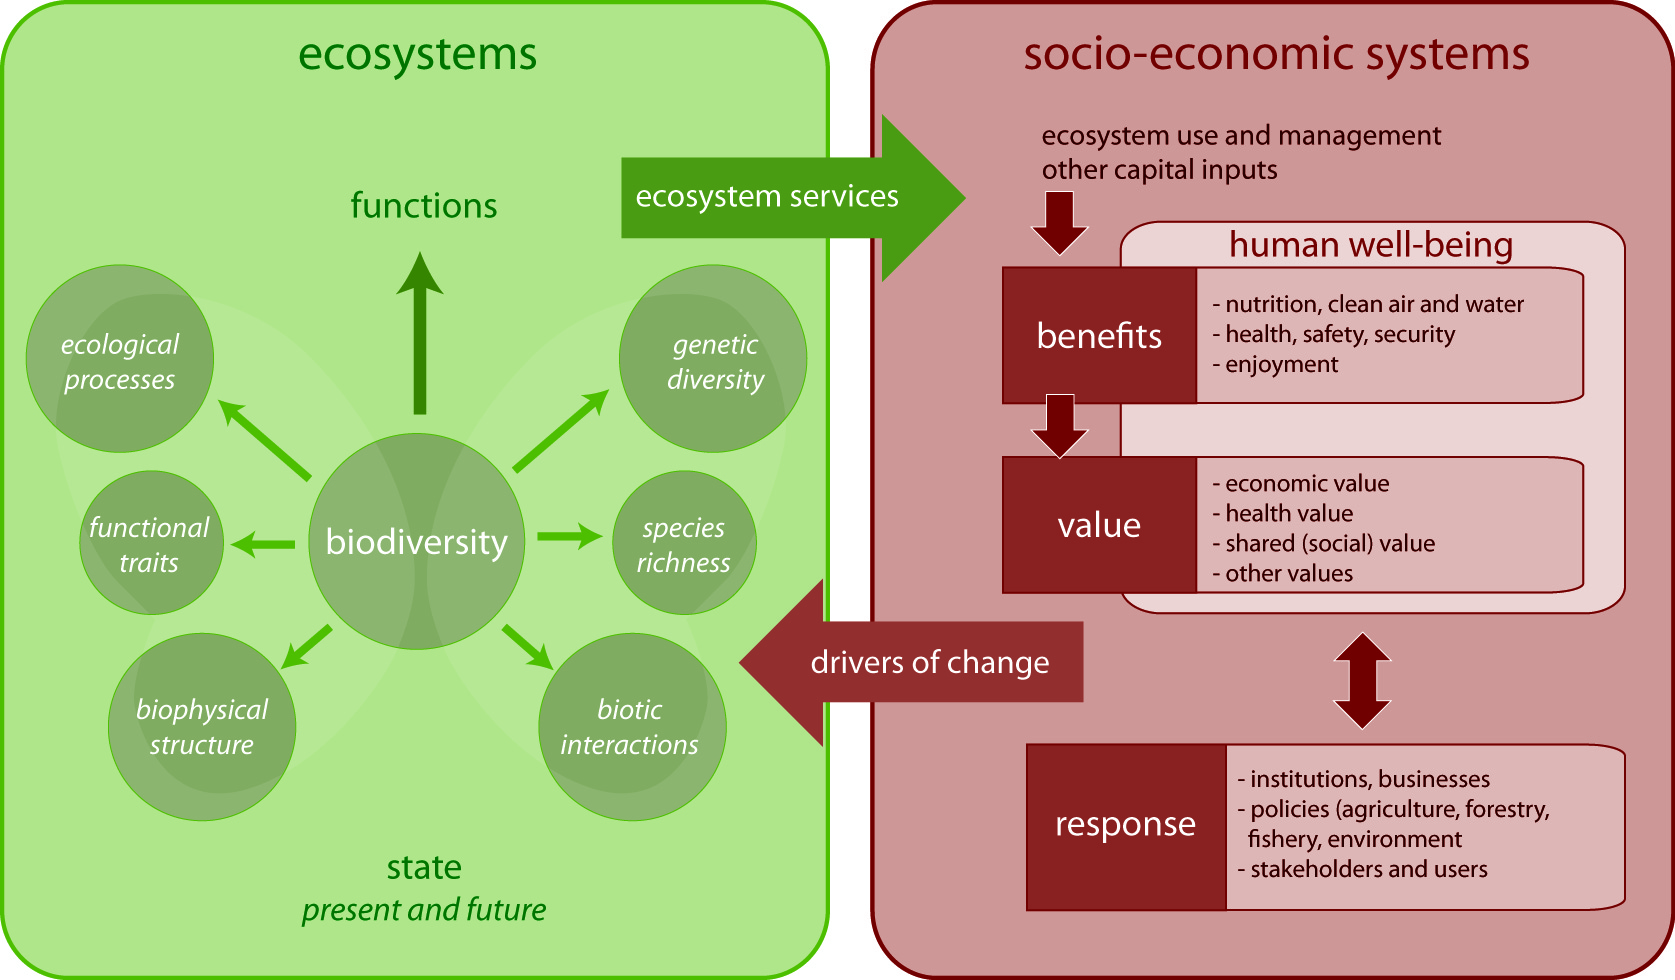 biophysical interactions which lead to diverse ecosystems